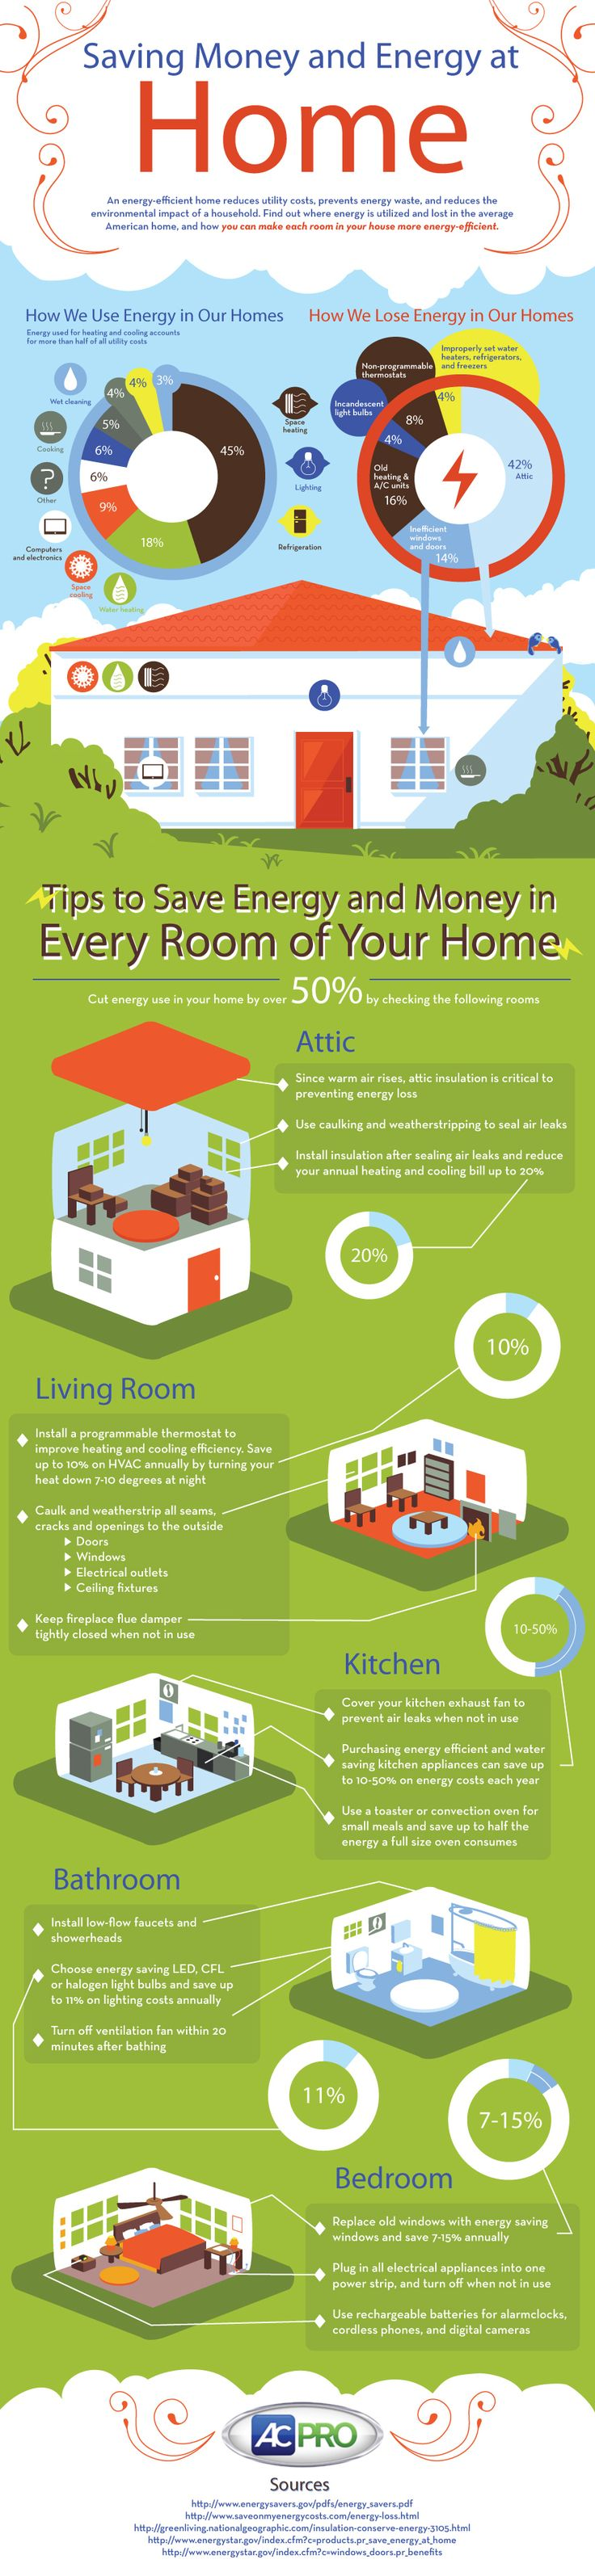 We use a vast amount of energy in our home every single day, that energy adds up to extra costs on our utility bills? Did you know that over 50% of the energy we use each year comes from using our heater and air conditioner? In this infographic, we show you how most of the energy in your home is used, which rooms use the most energy and ways to reduce energy use and start saving money.: